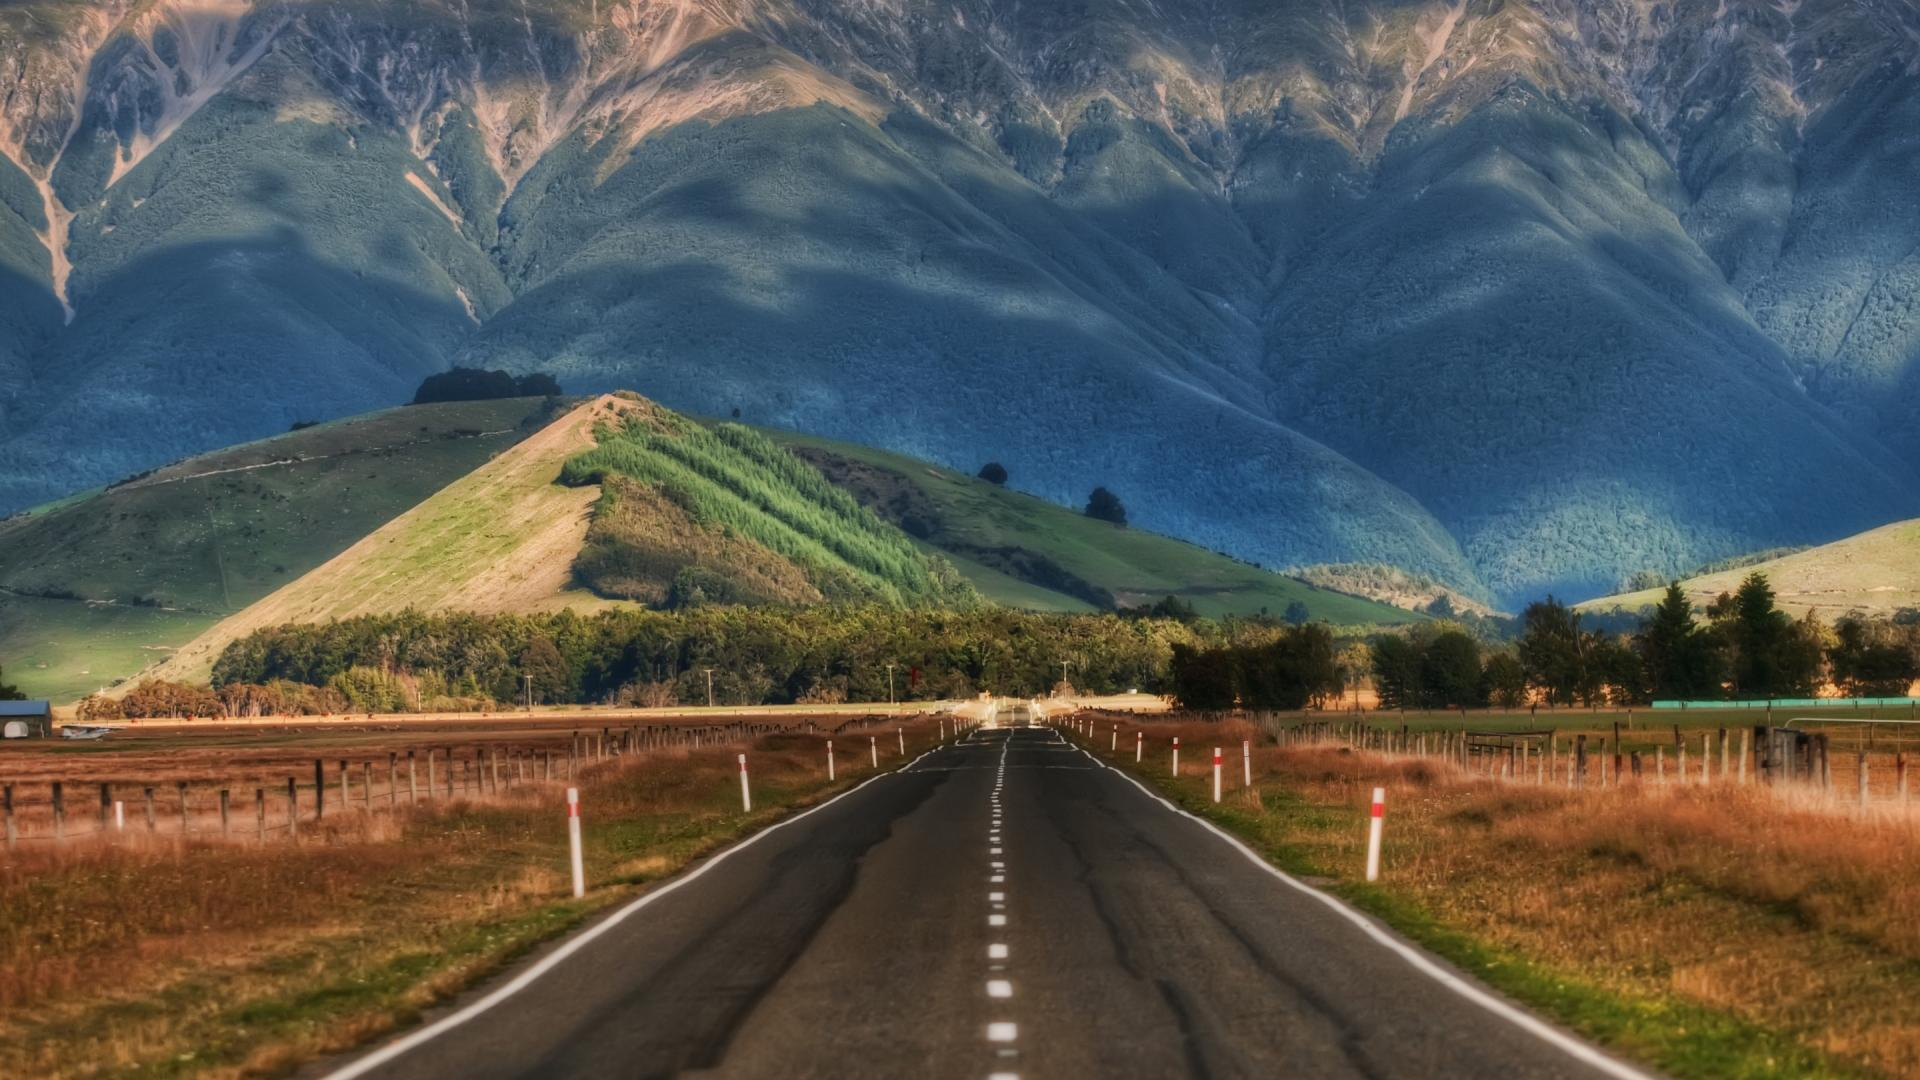 Macbook Pro A1398 Wallpaper With Picture Of Road In New